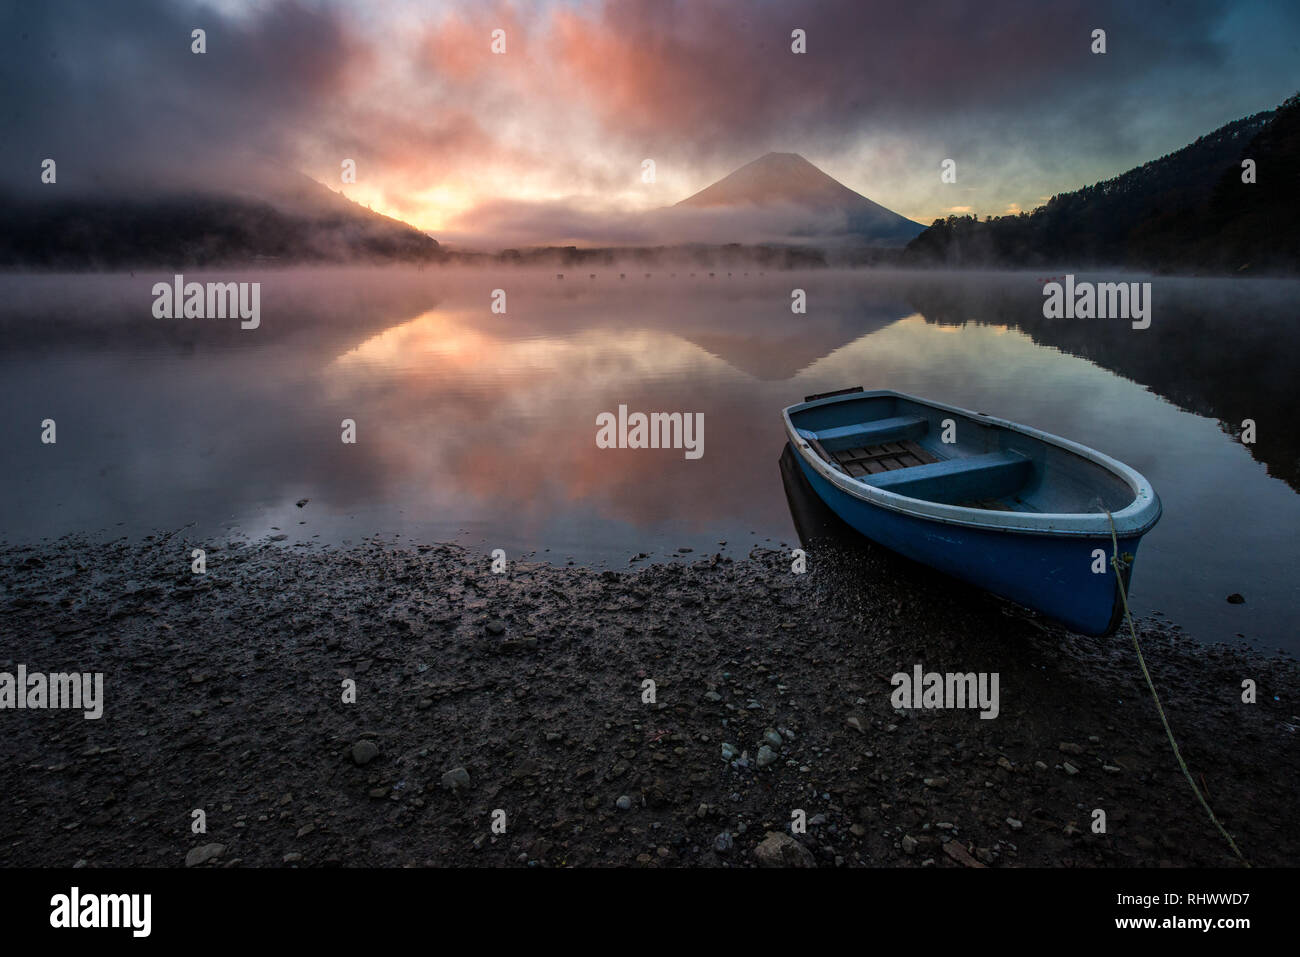 fishing boats on the shore of Lake Shōji with morning mist and Mount Fuji at sunrise - Stock Image